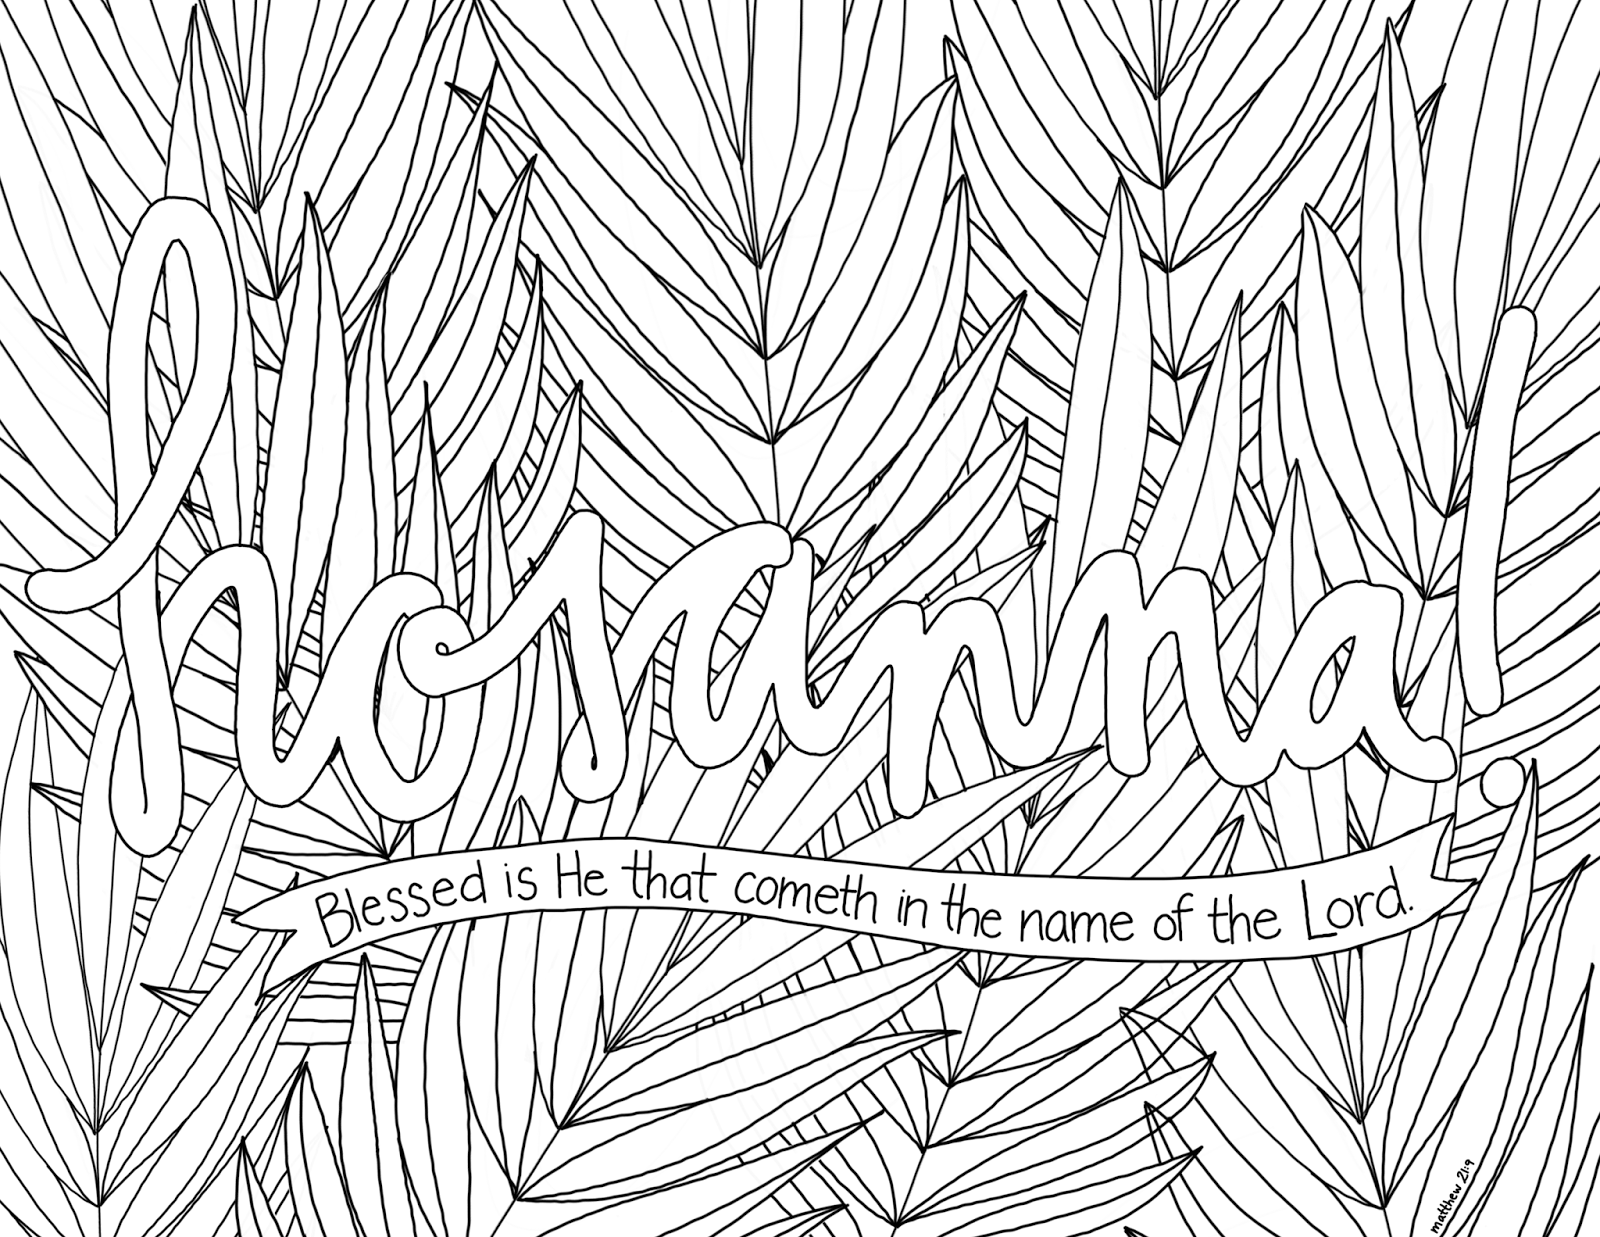 hosanna coloring page palm sunday coloring pages best coloring pages for kids hosanna page coloring